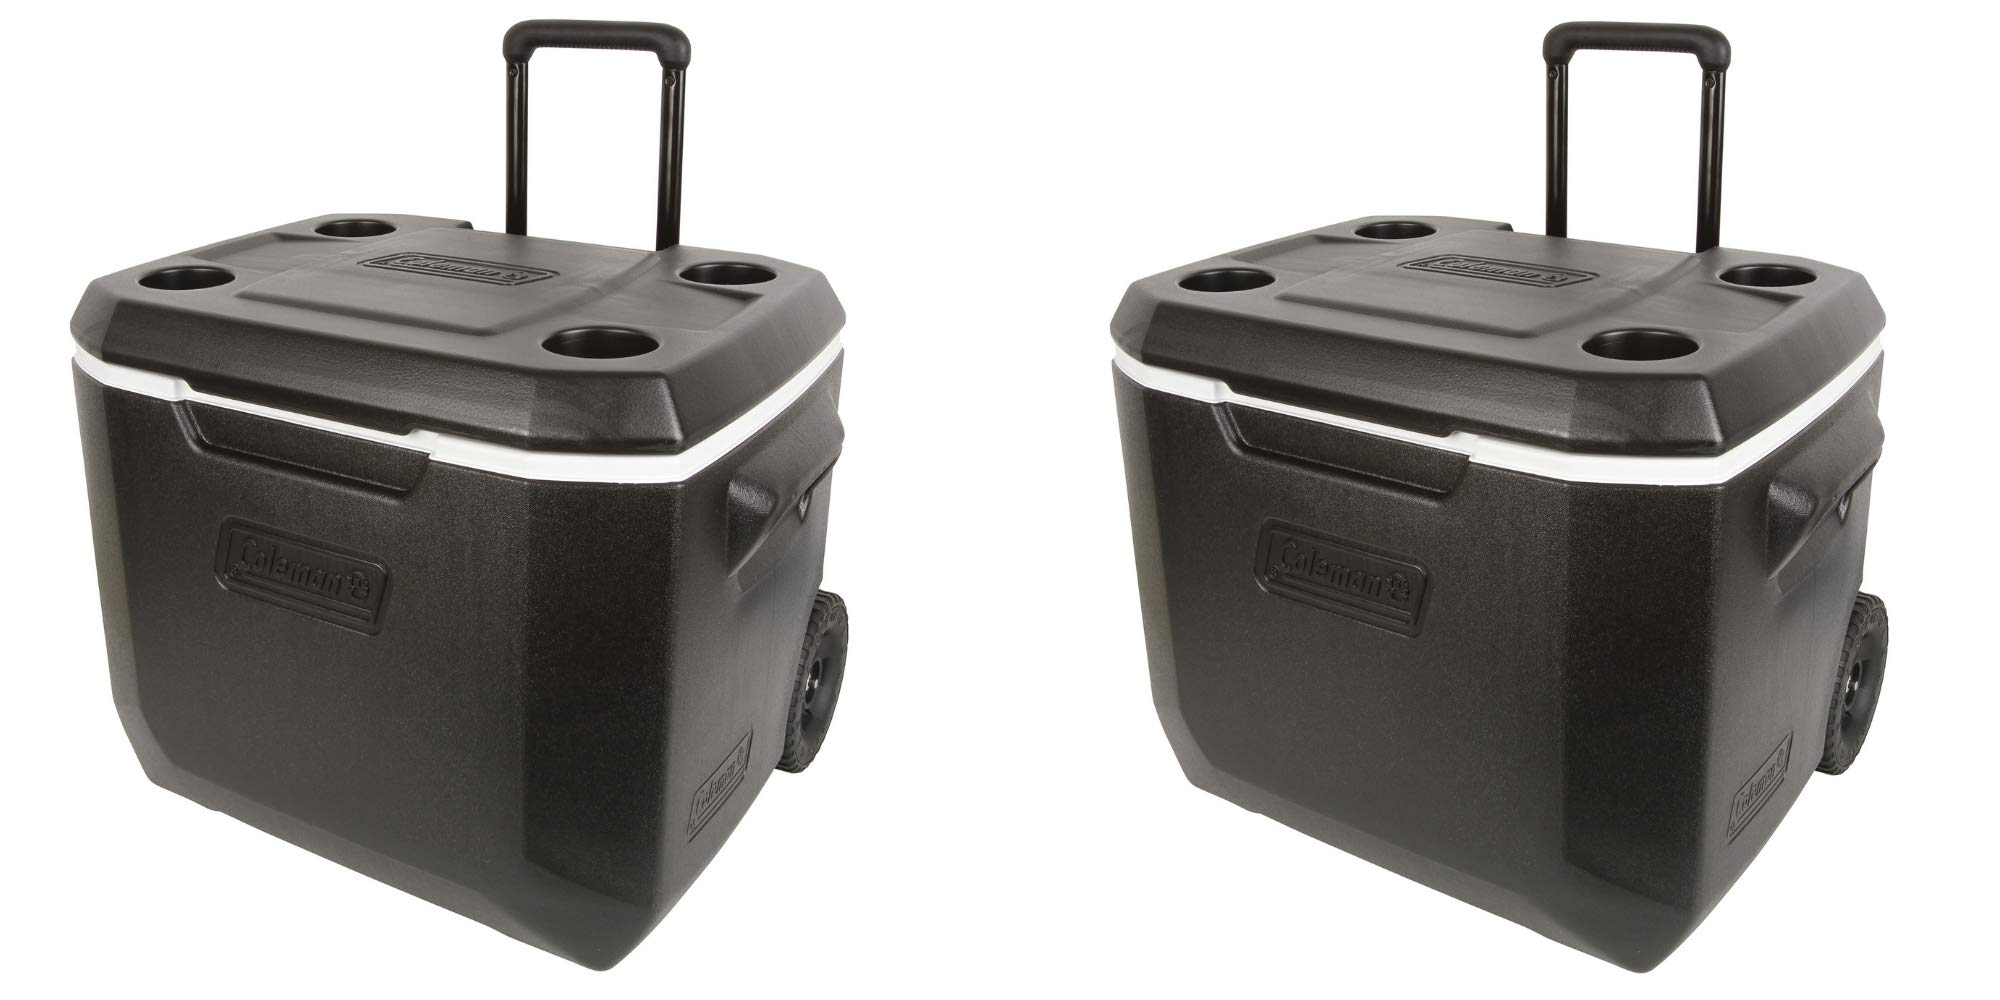 Coleman 50-Quart Xtreme 5-Day Heavy-Duty Cooler with Wheels, (Black)/ Set of 2